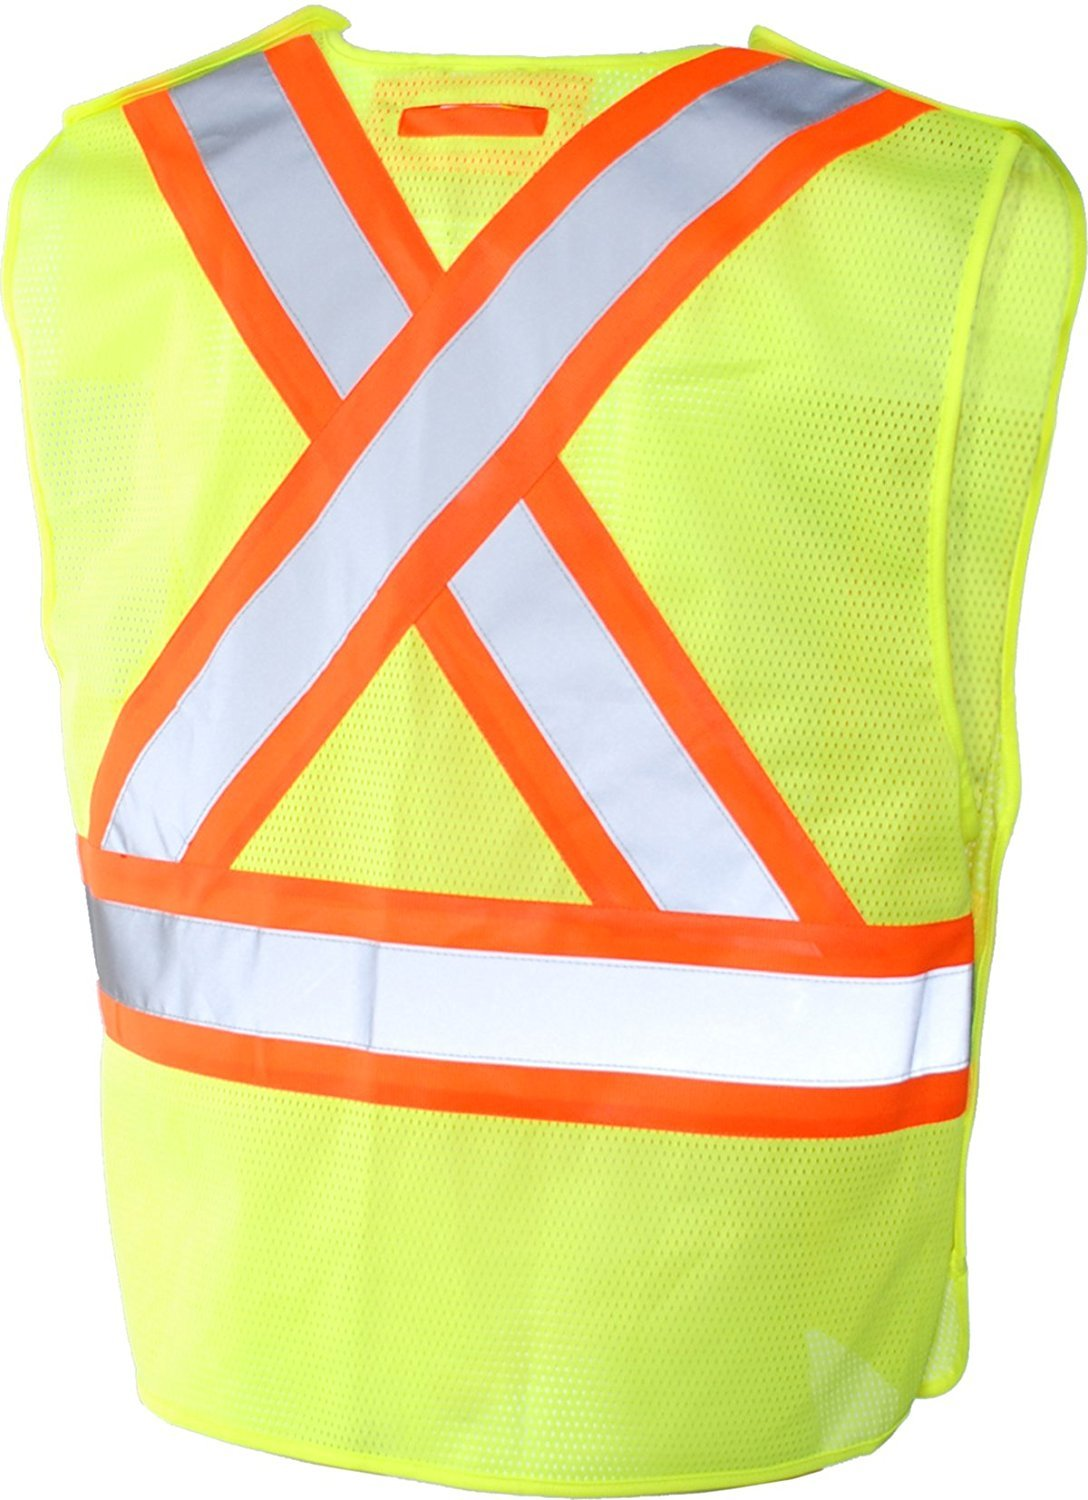 3 Pack Large//X-Large BBH 116523YLLXL//3 Yellow Terra 11-6523-YLLXL//3 High-Visibility 5 Point Tear Away Reflective Safety Vest